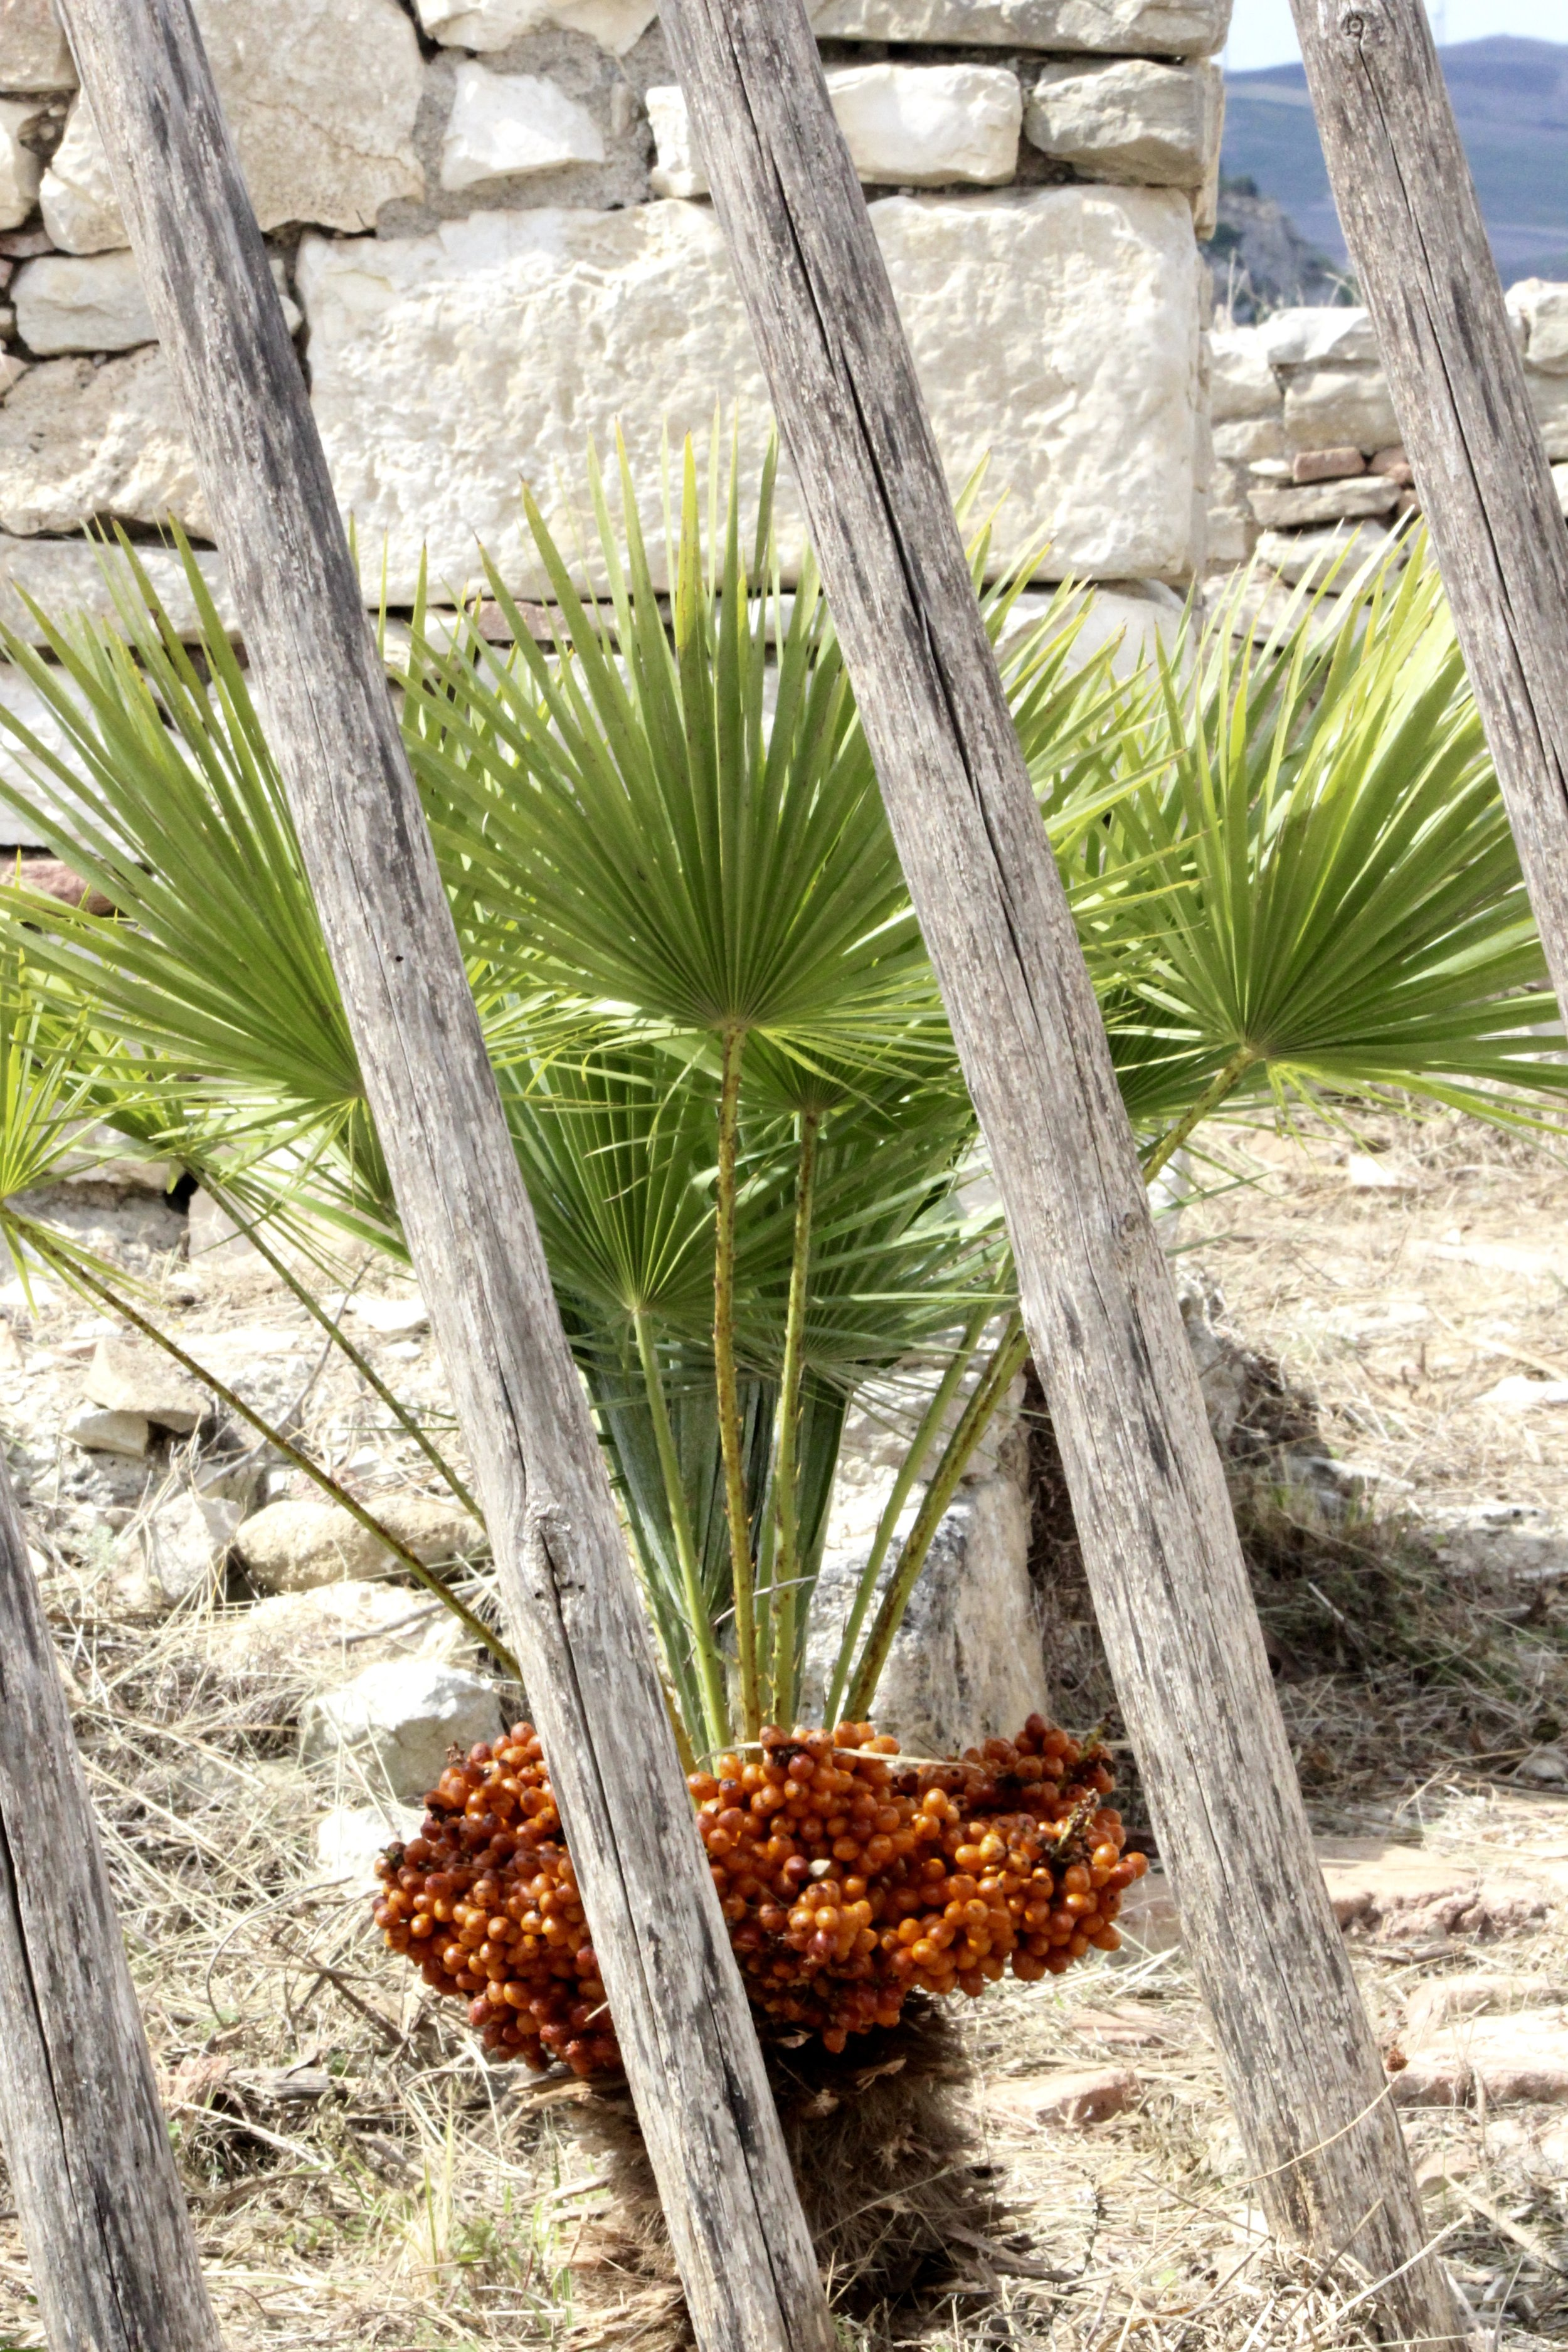 Not many plants in this area, just an occasional little palm like this beaut here.